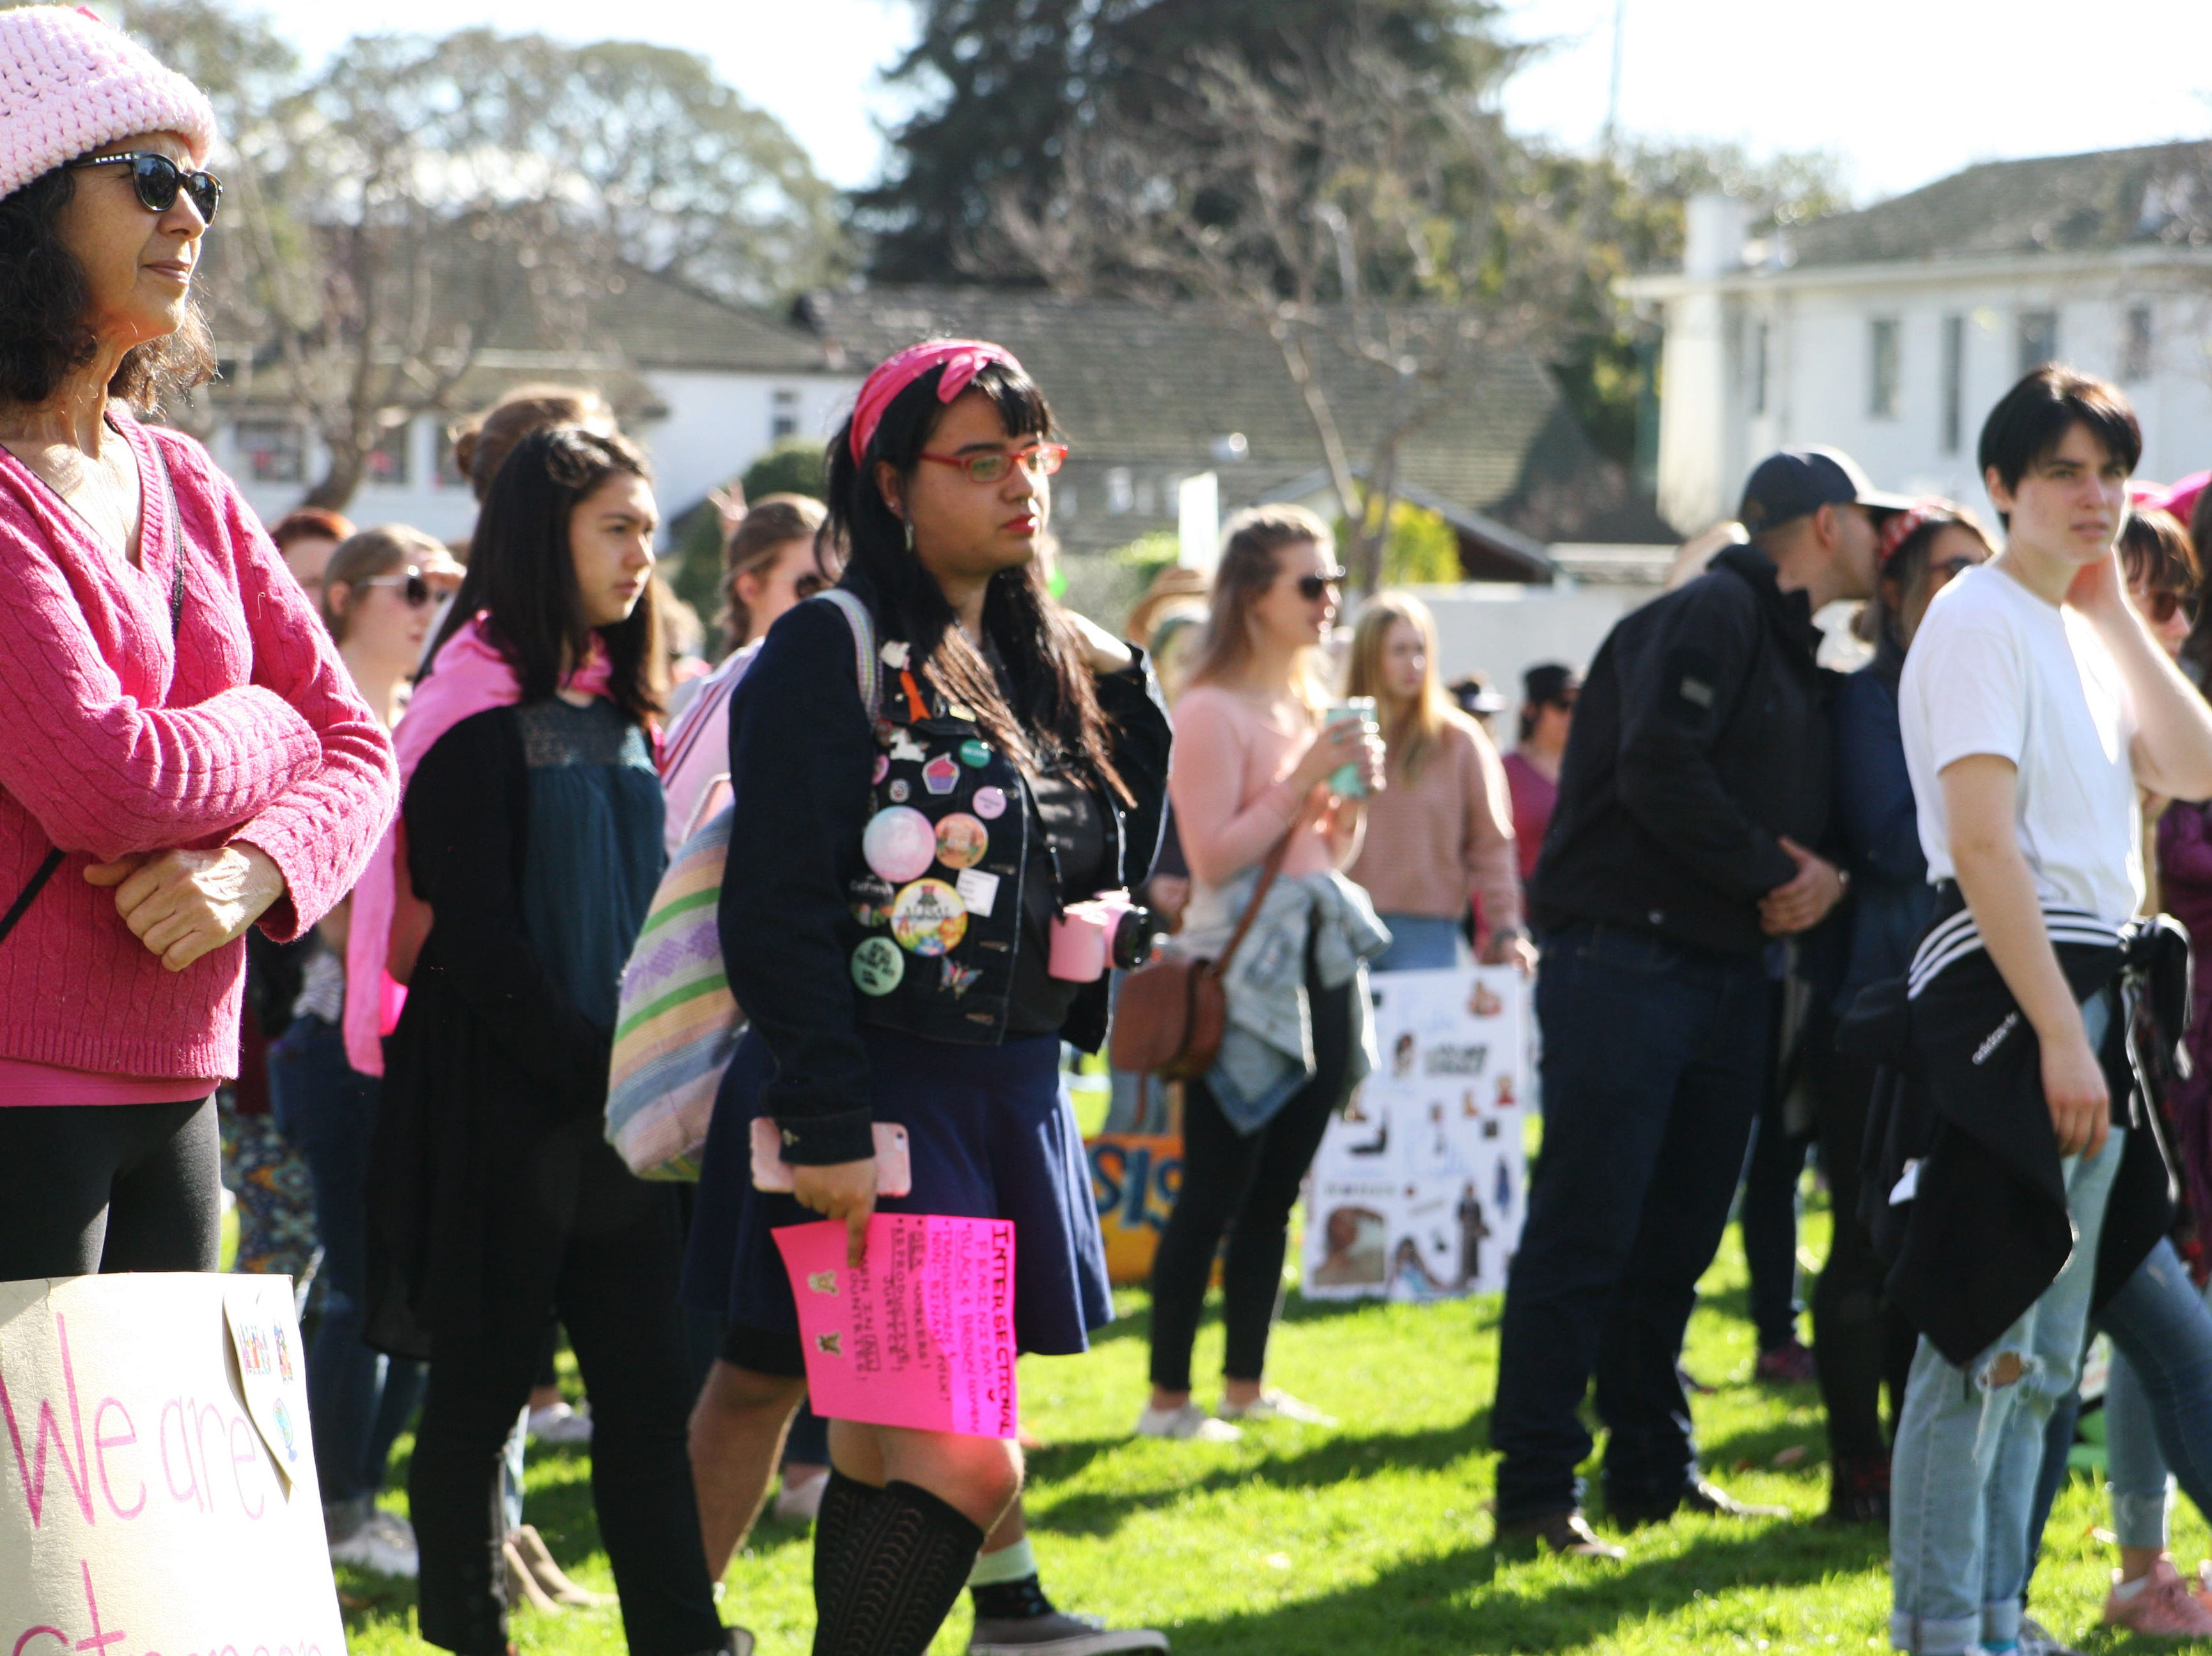 A shot of the crowd at the 2019 Women's March in Monterey, Calif.